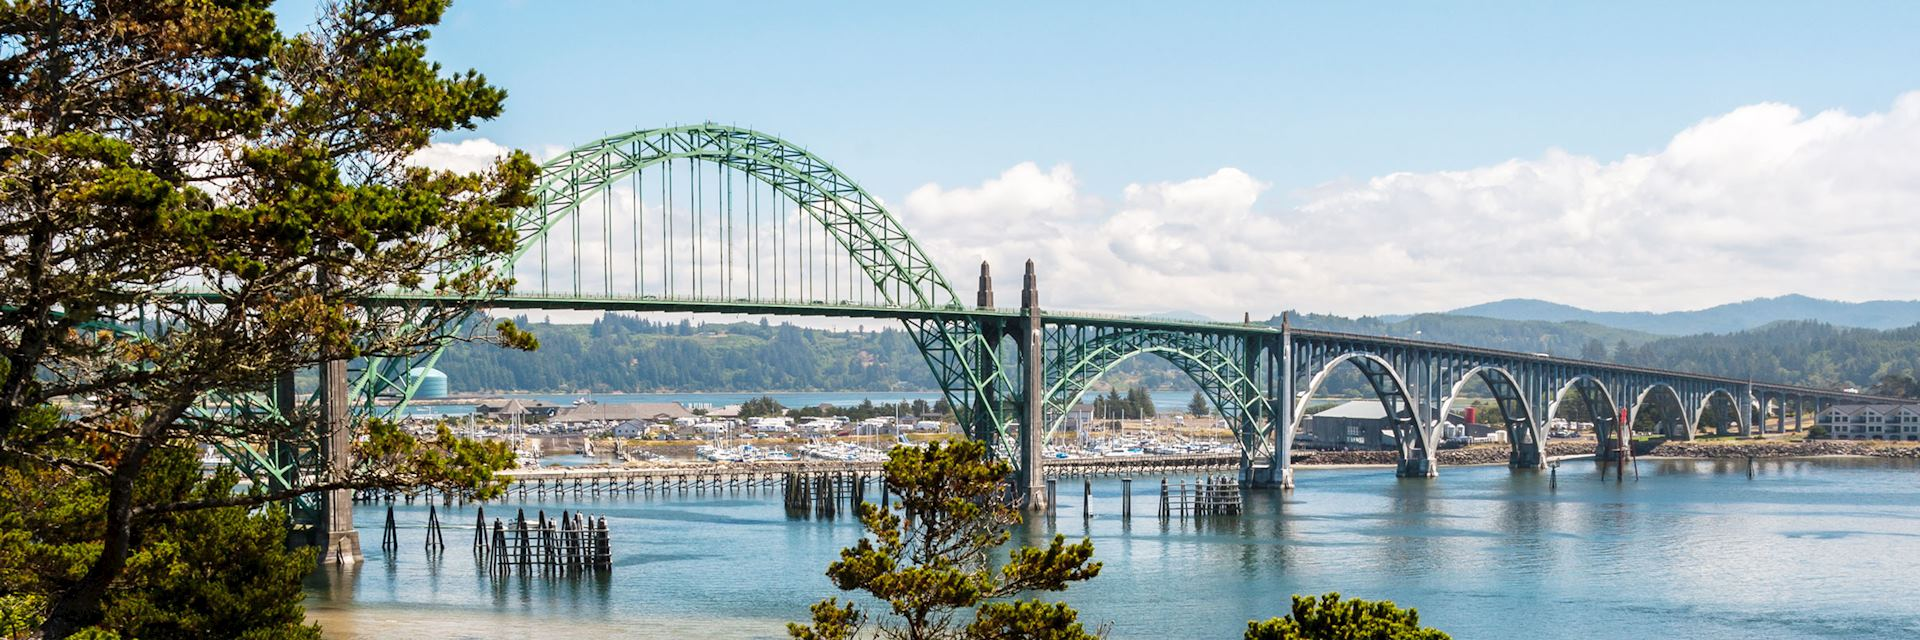 Yaquina Bay Bridge, Newport, Oregon